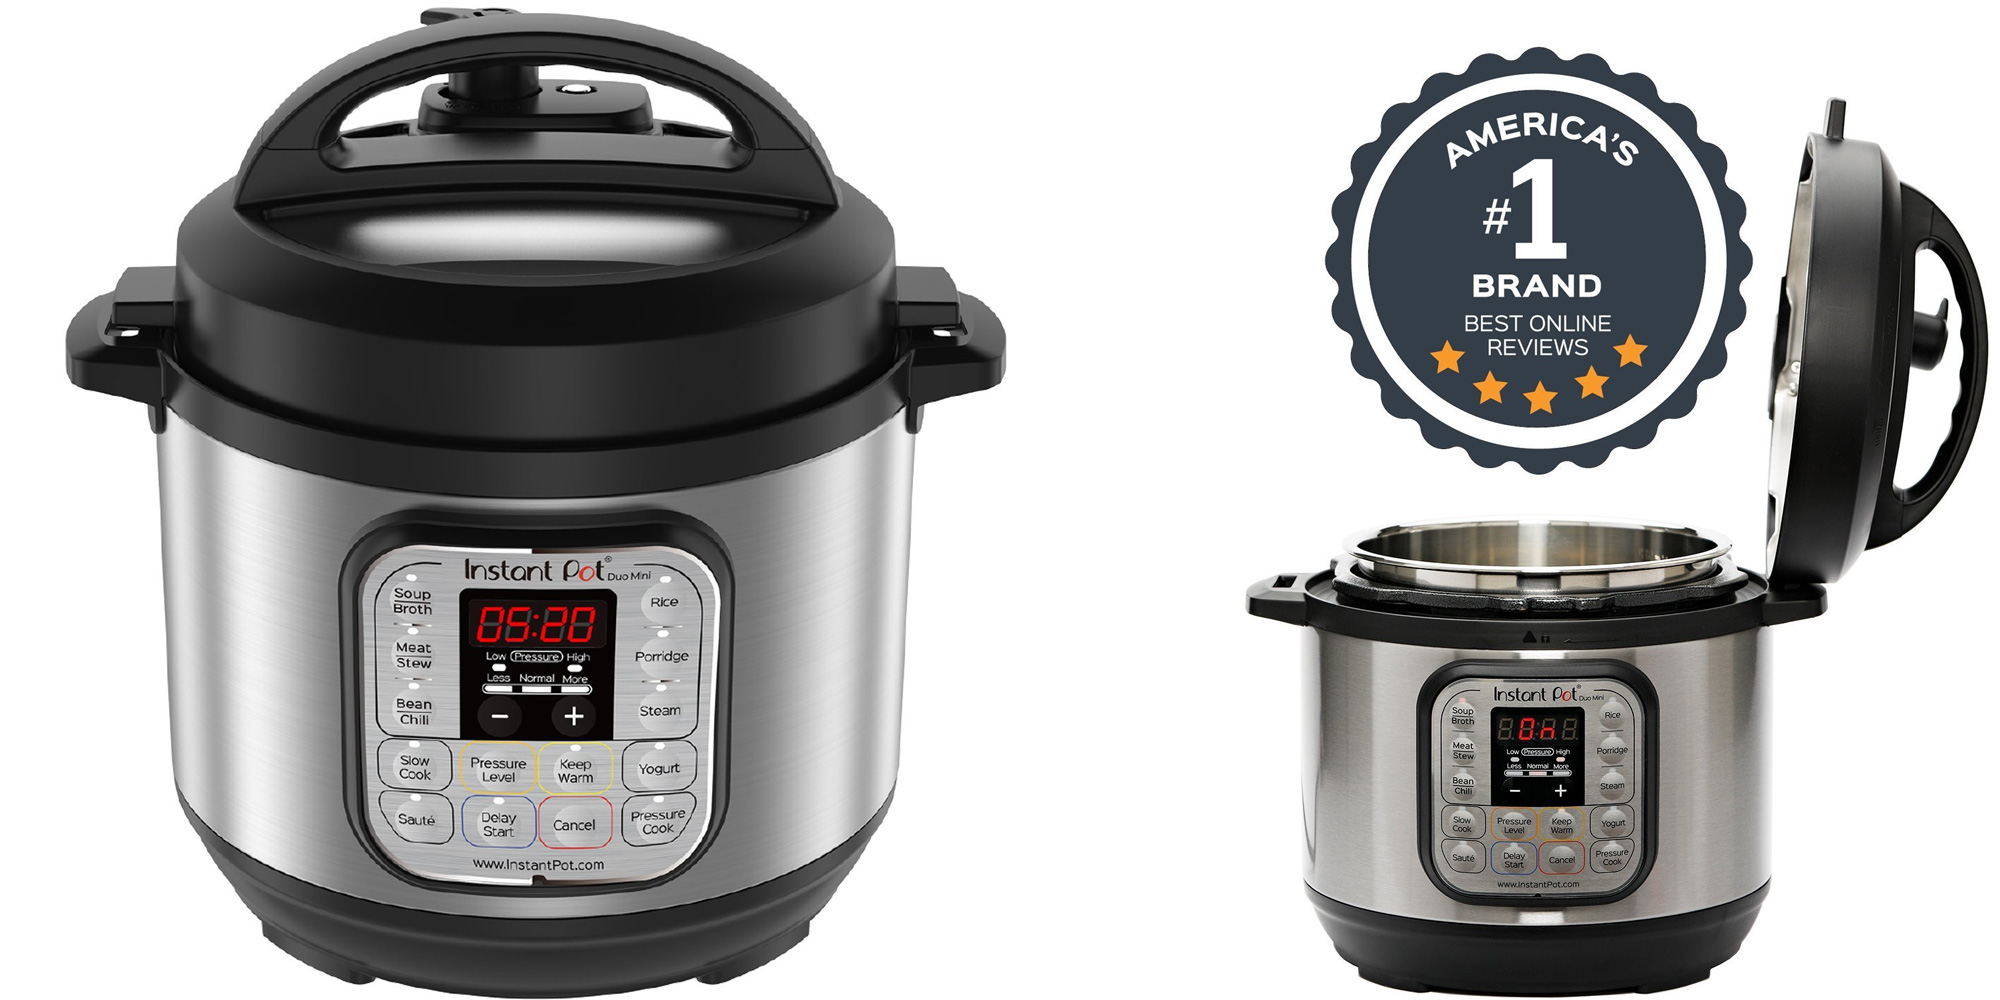 The Instant Pot Duo Mini is at its lowest price ever on